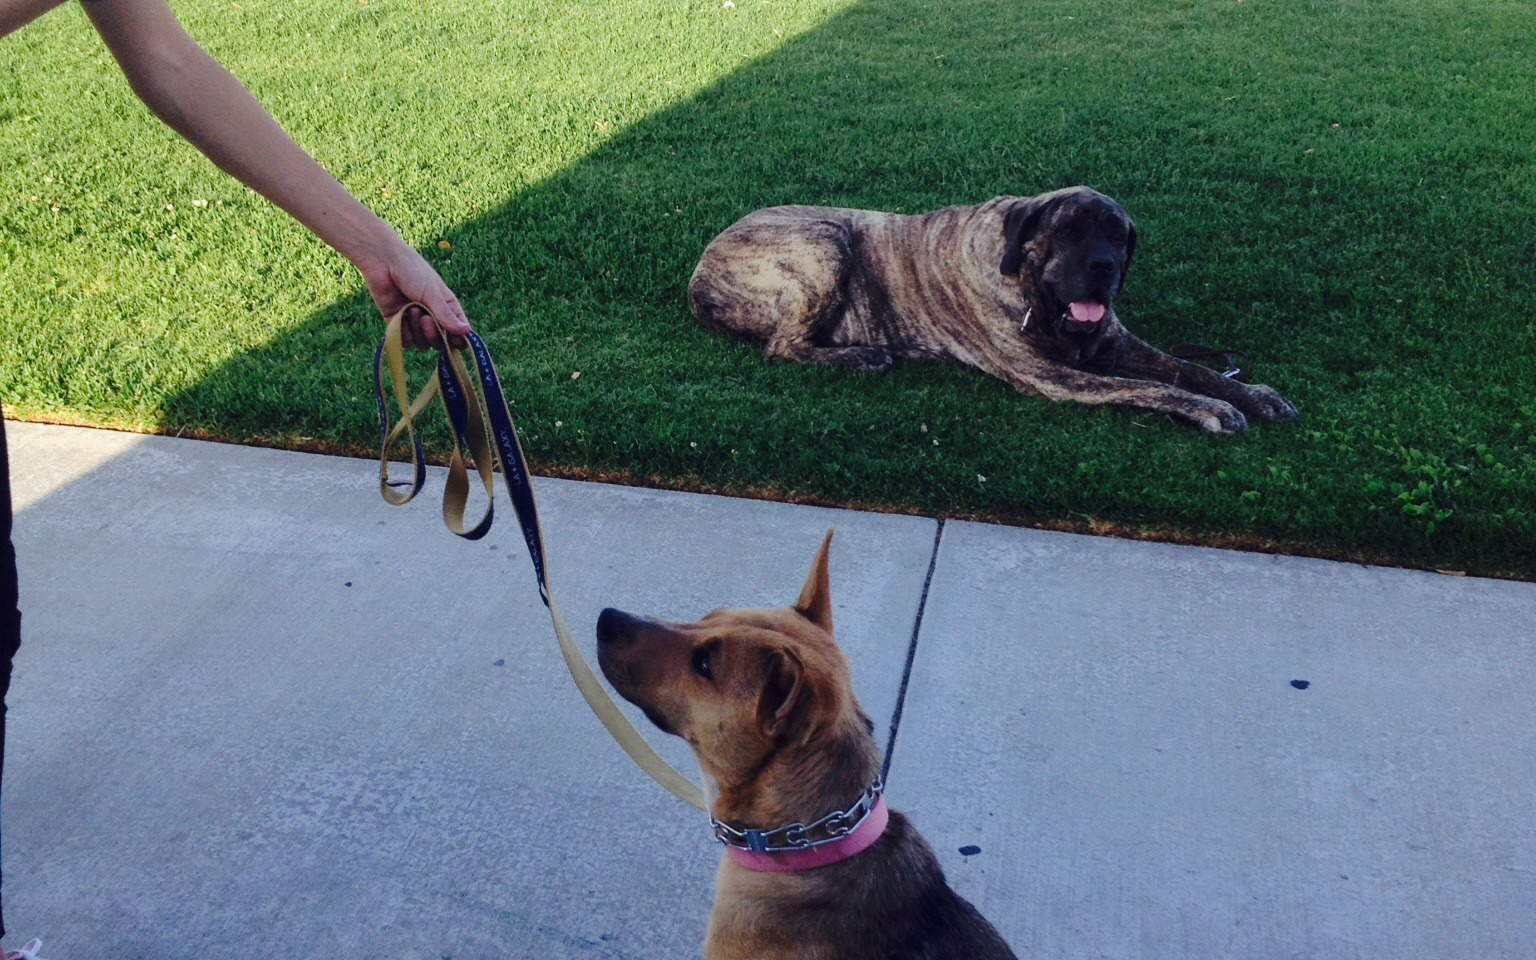 Mieka is dog selective and this was a focus drill. Gertrude was my demo dog back in the day. 2015